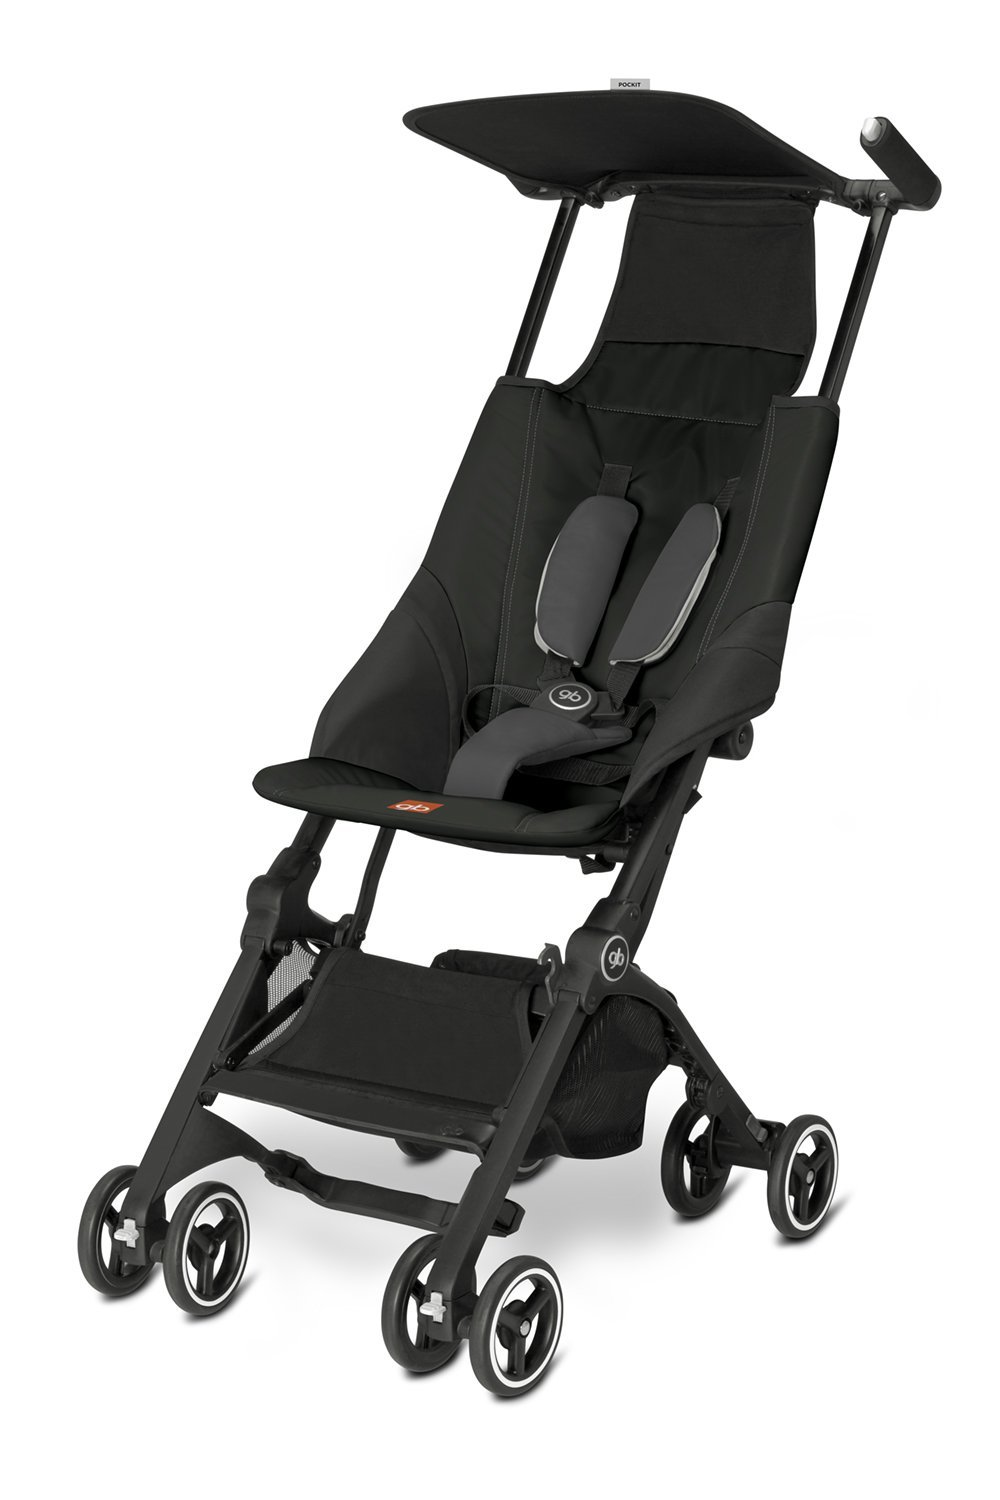 61Mqt30aXSL. SL1500 15 Best Umbrella Strollers for 2021 [Picked by Parents]